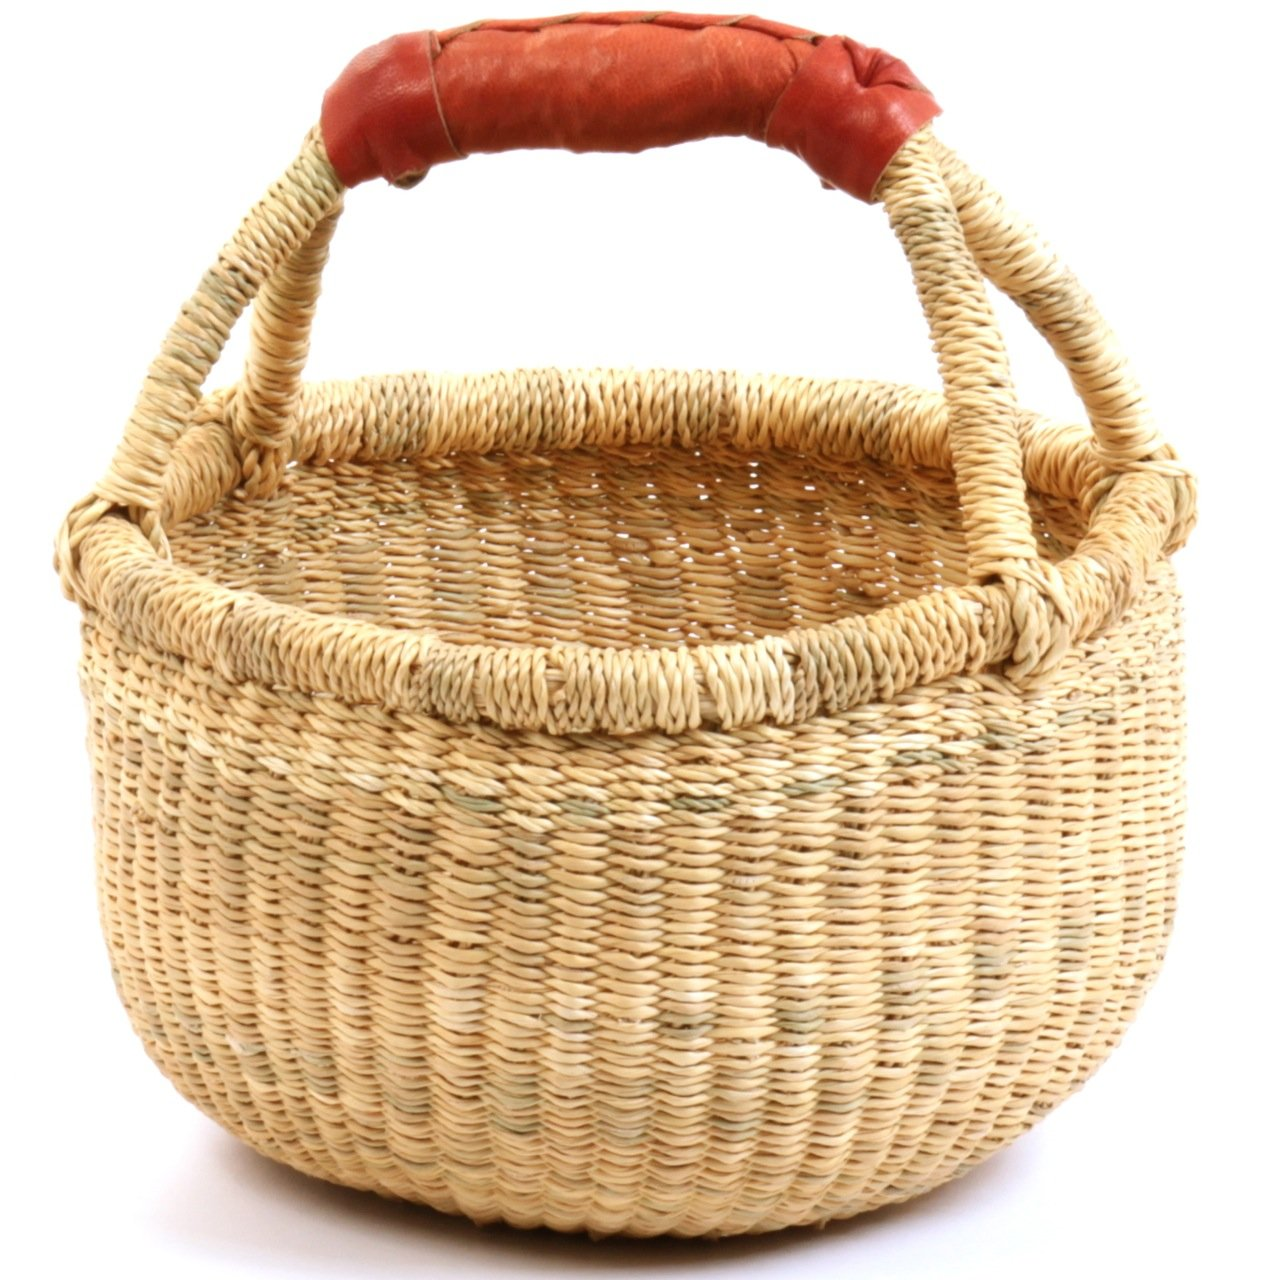 Fair Trade Ghana Bolga African Dye-Free Fully Shaped Mini Market Basket 7-9 Across, 20122 Baskets of Africa